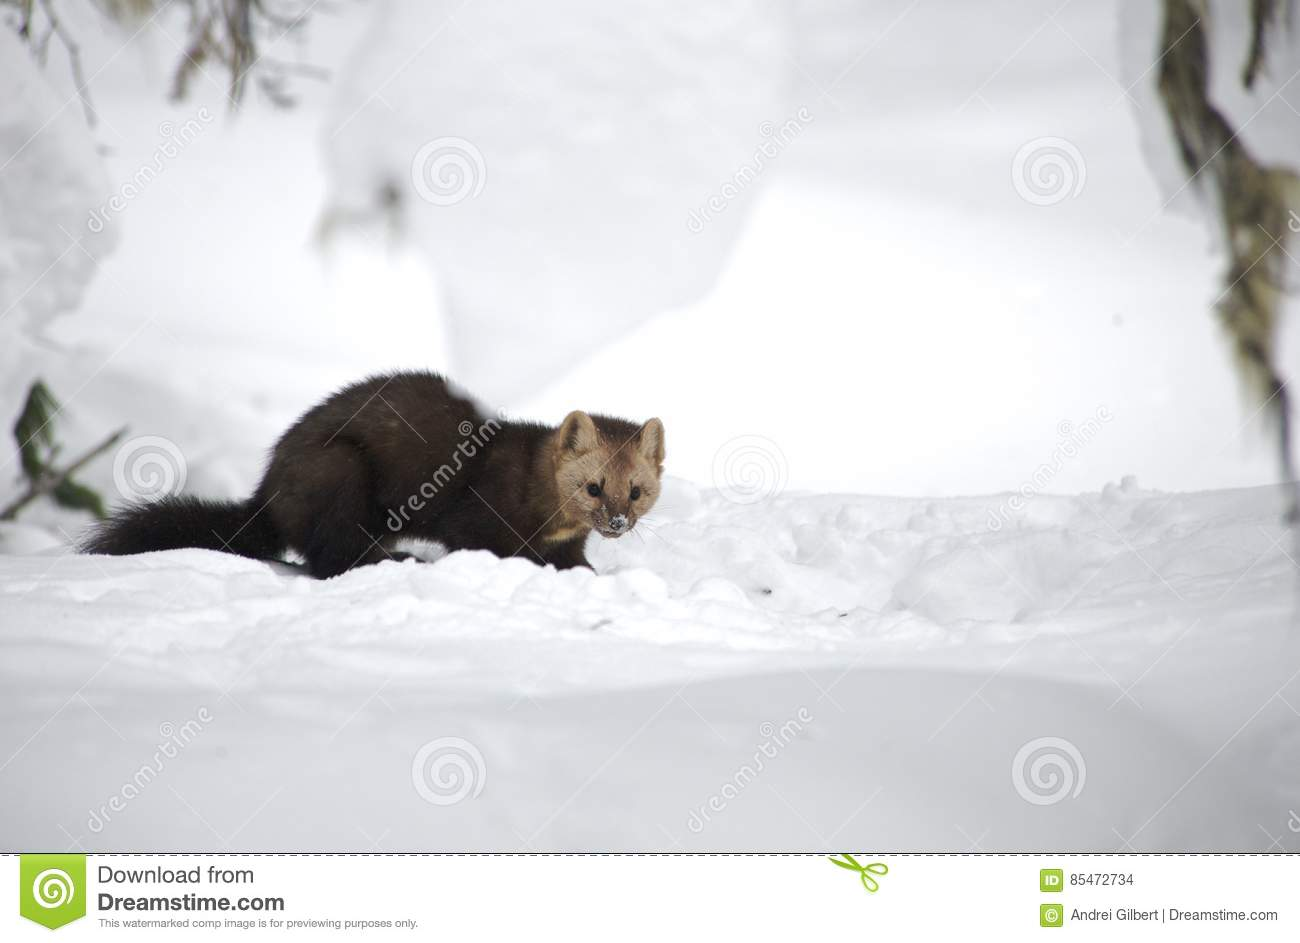 Sable on a background of snowdrifts